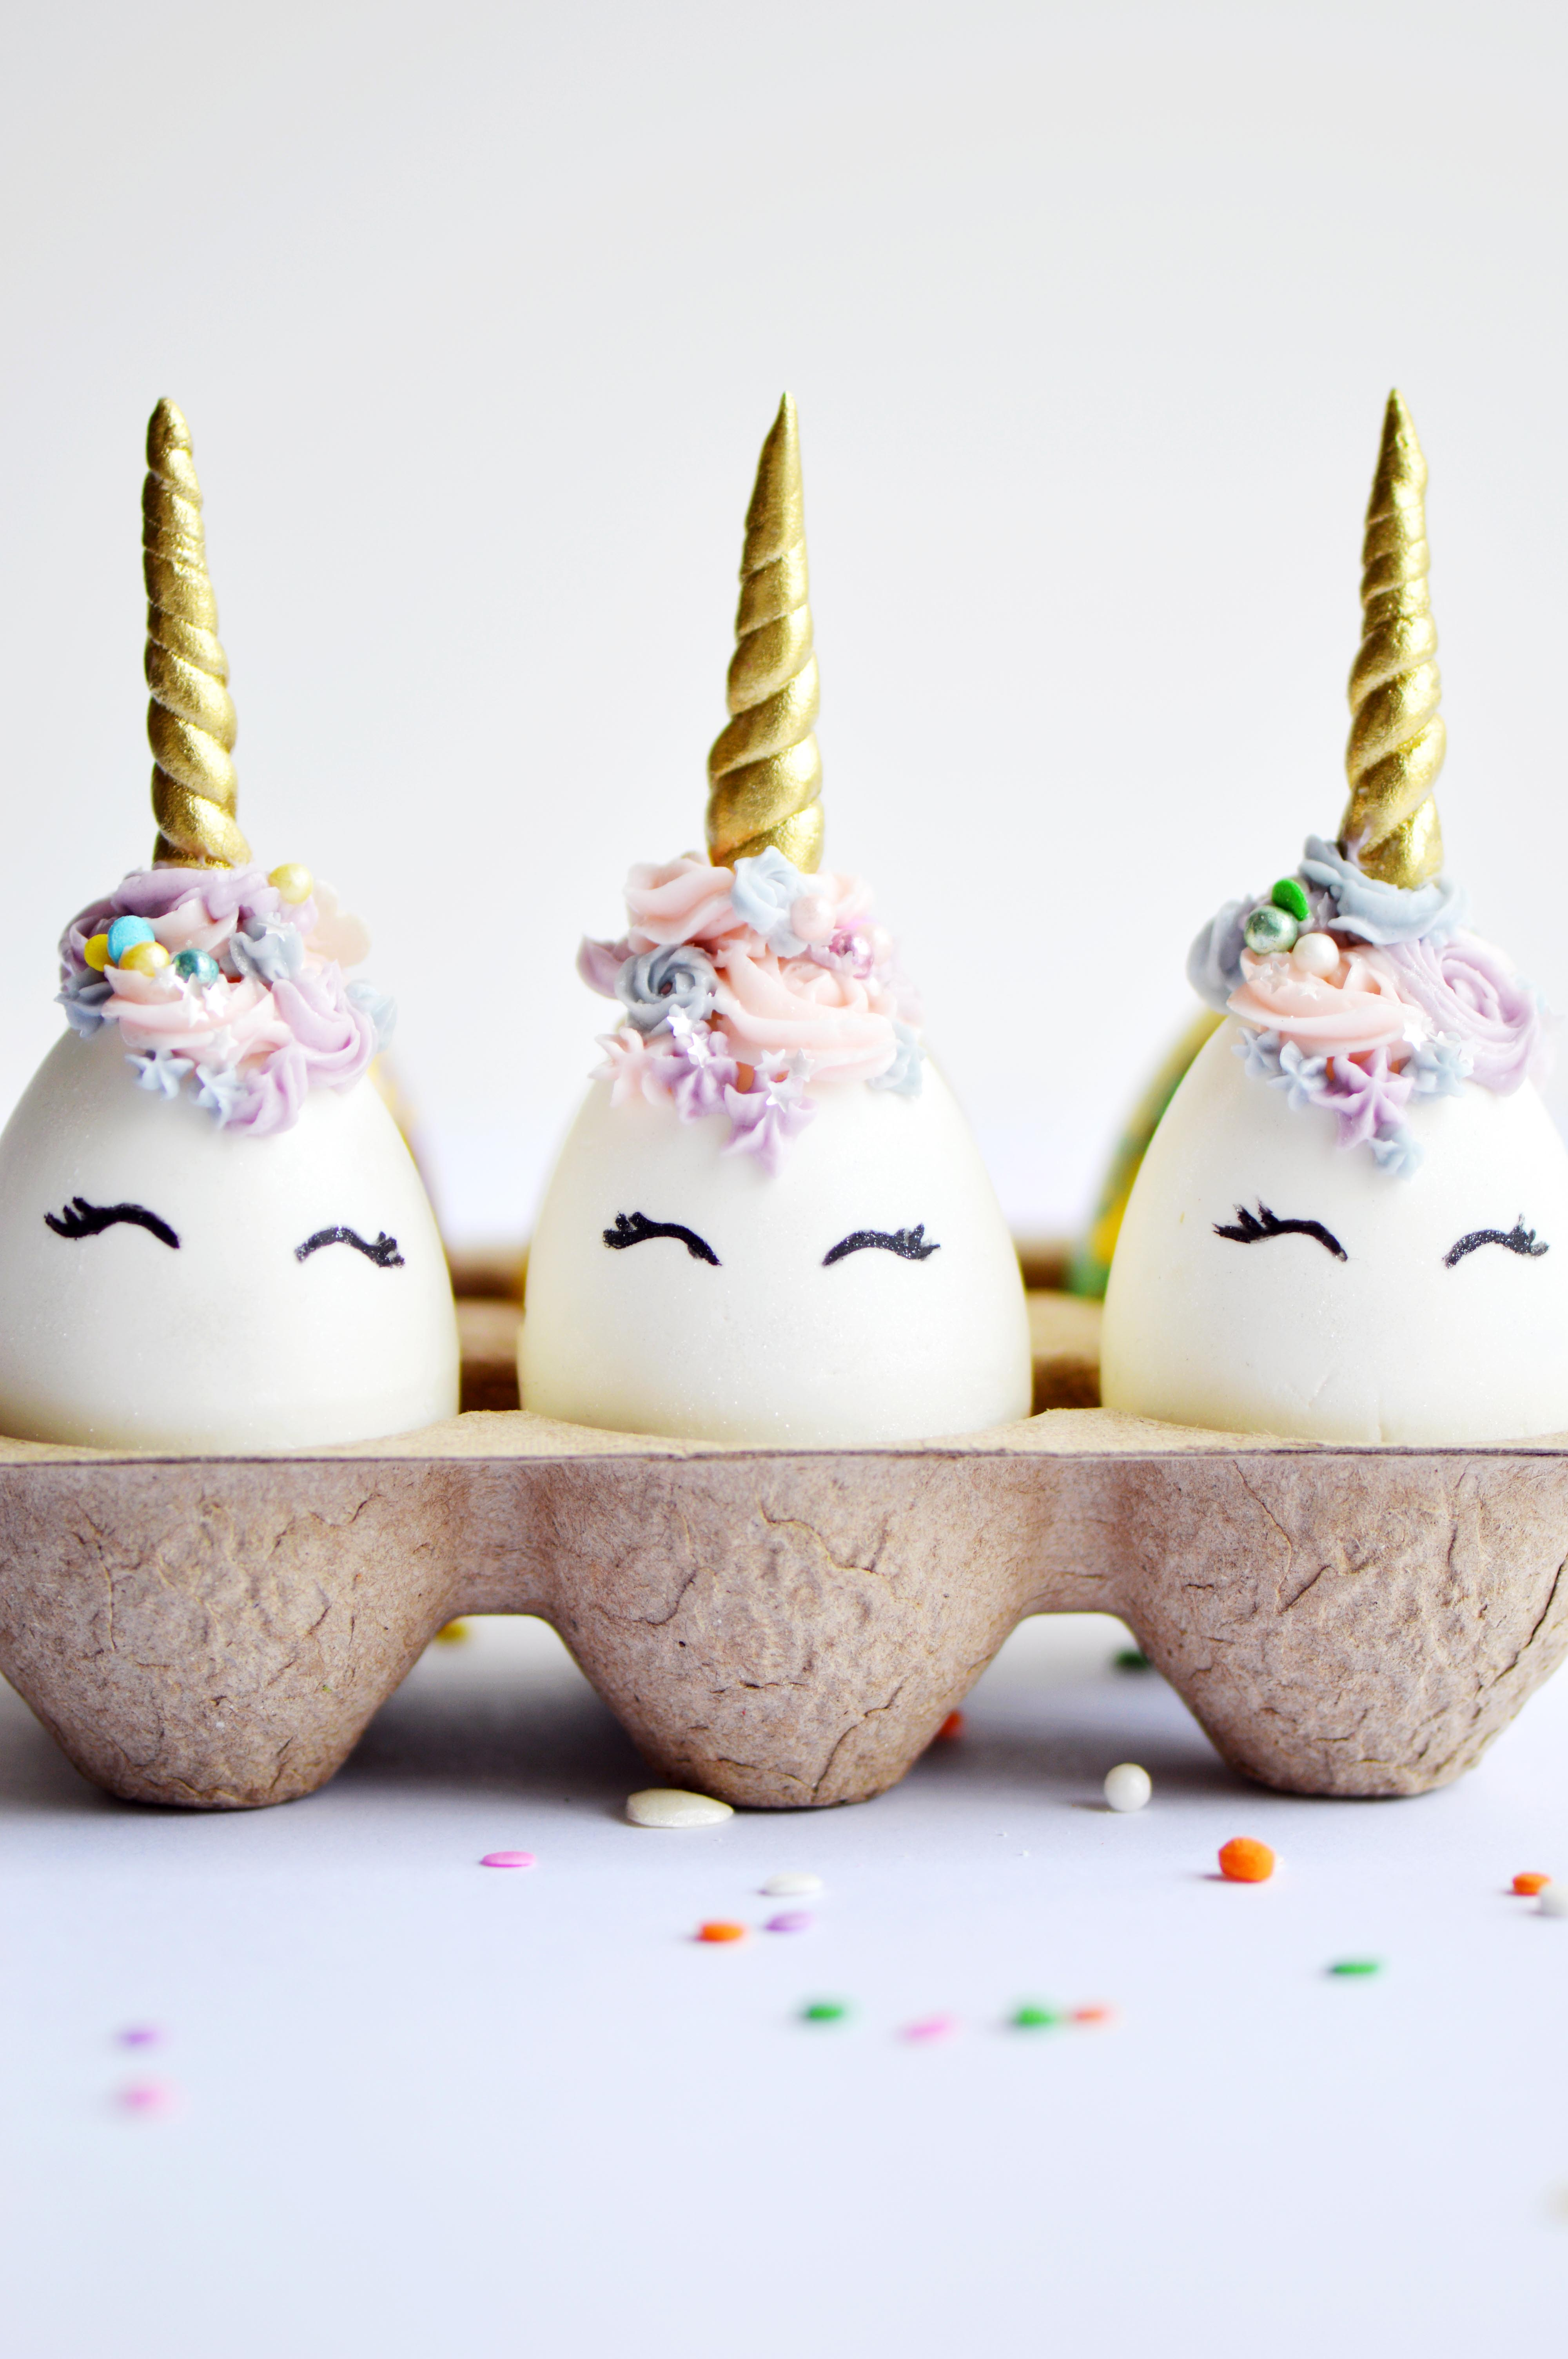 Chocolate Unicorn Easter Eggs The Busy Spatula